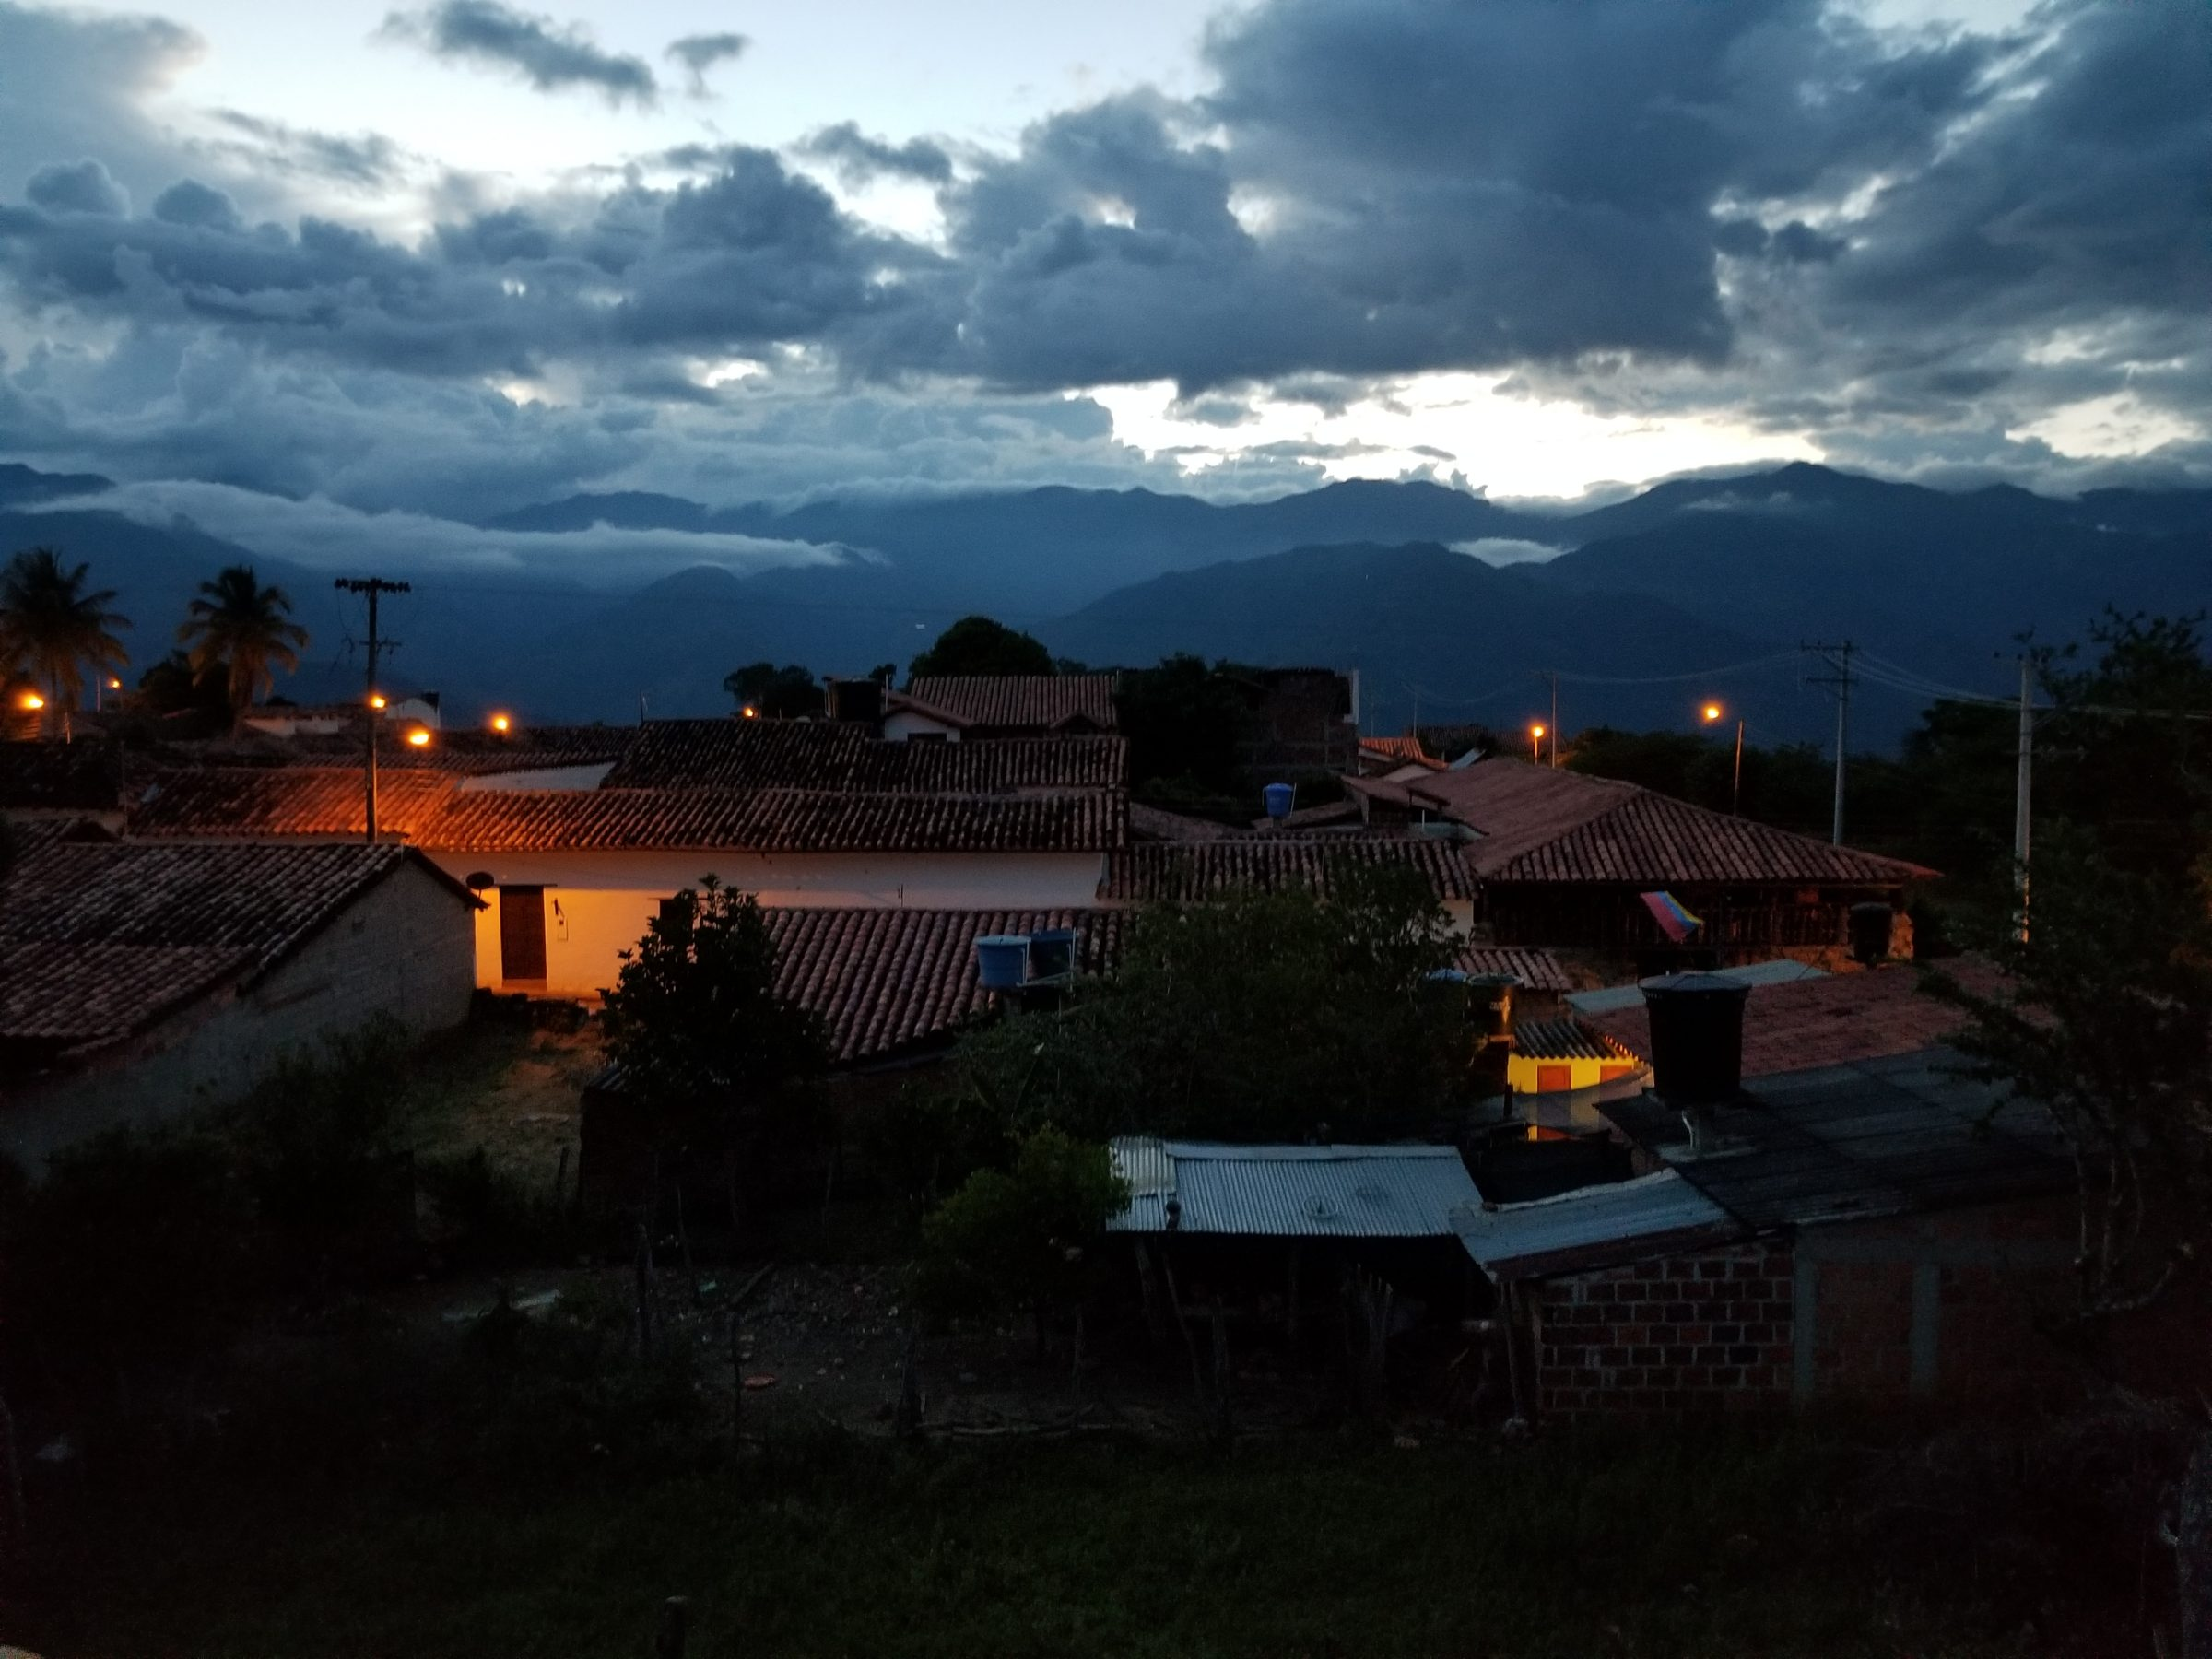 View from our room in Guane as we settle in for the night